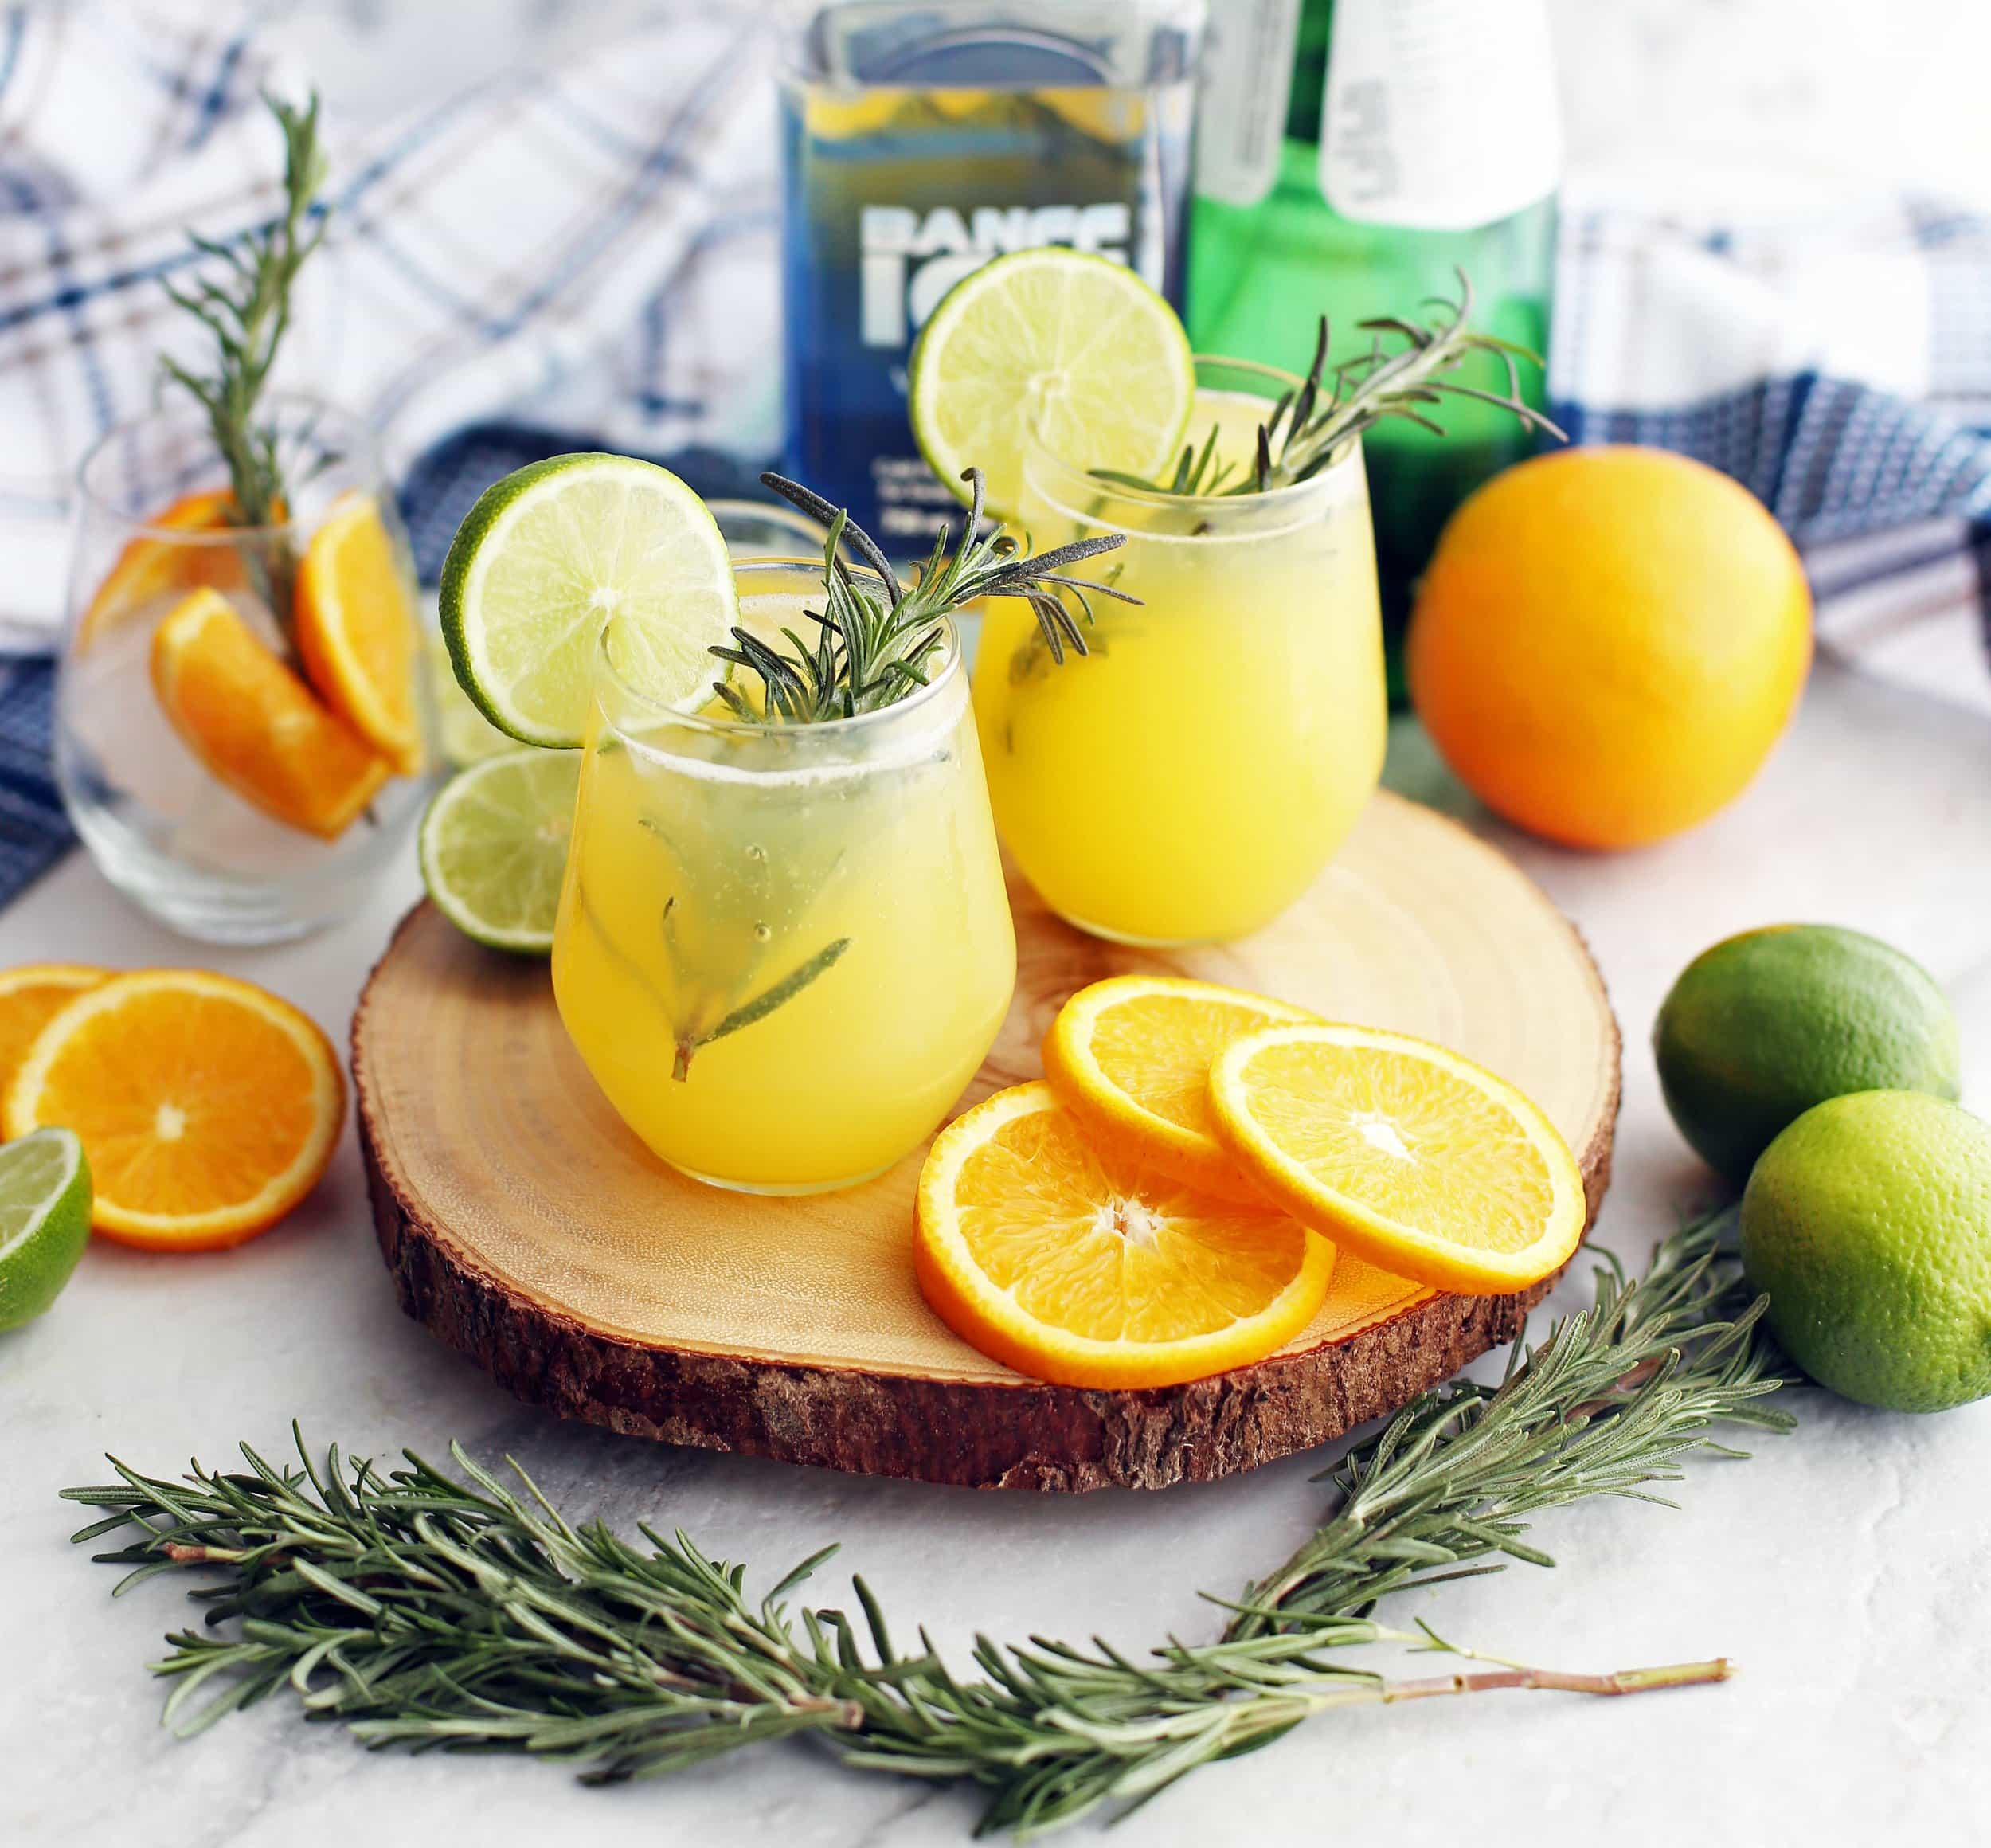 A side view of two glasses of sparkling maple orange vodka with fresh rosemary sprigs, lime slices,and orange slices.